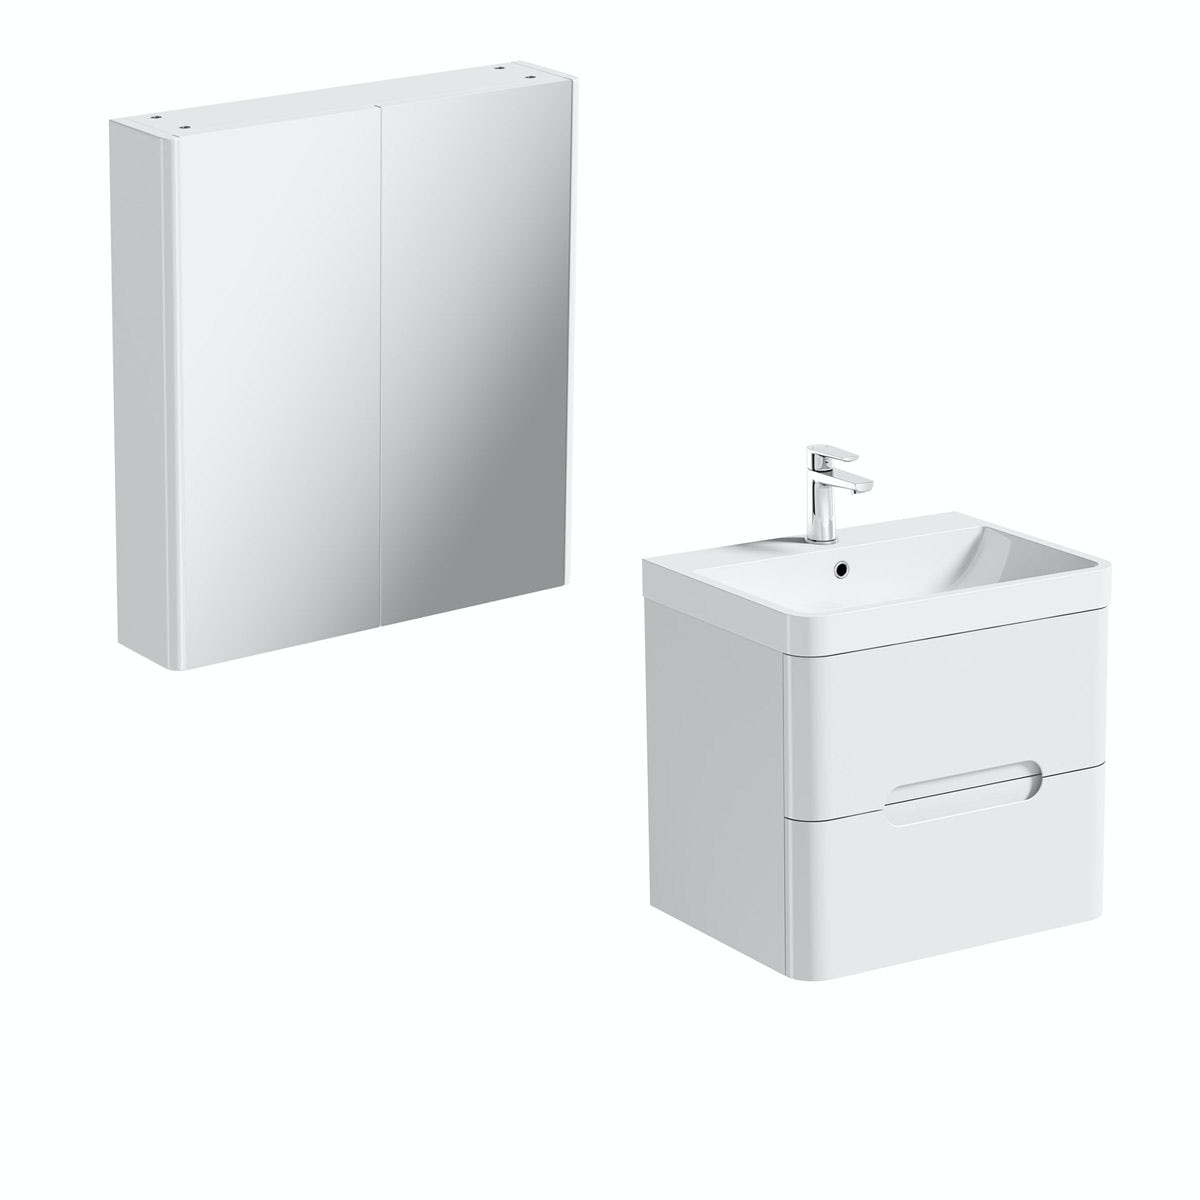 Mode Ellis white wall hung vanity unit 600mm and mirror cabinet offer